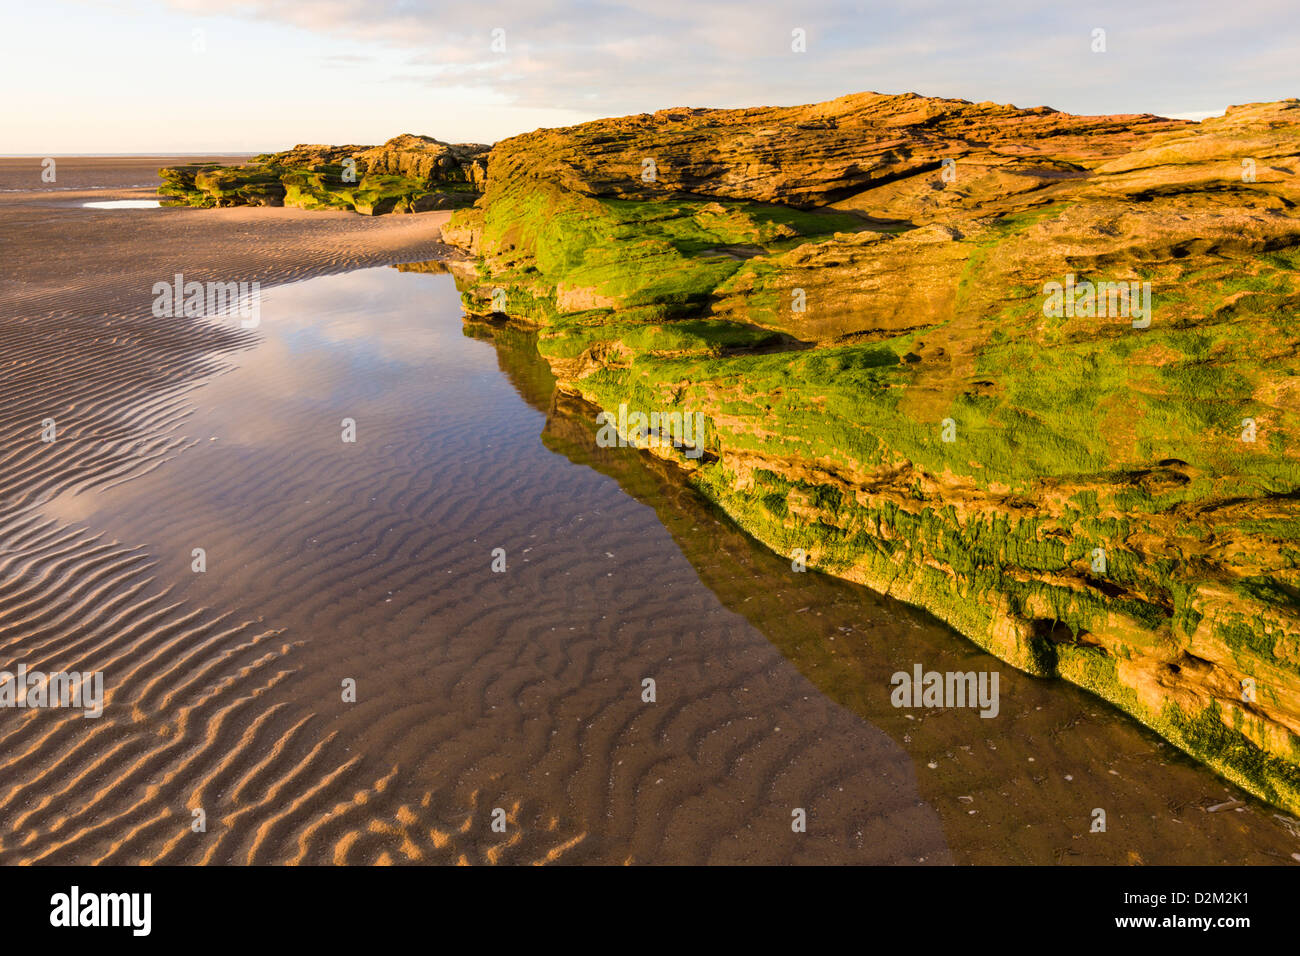 Rippled sand and sandstone rocks at low tide, Wirral, England - Stock Image